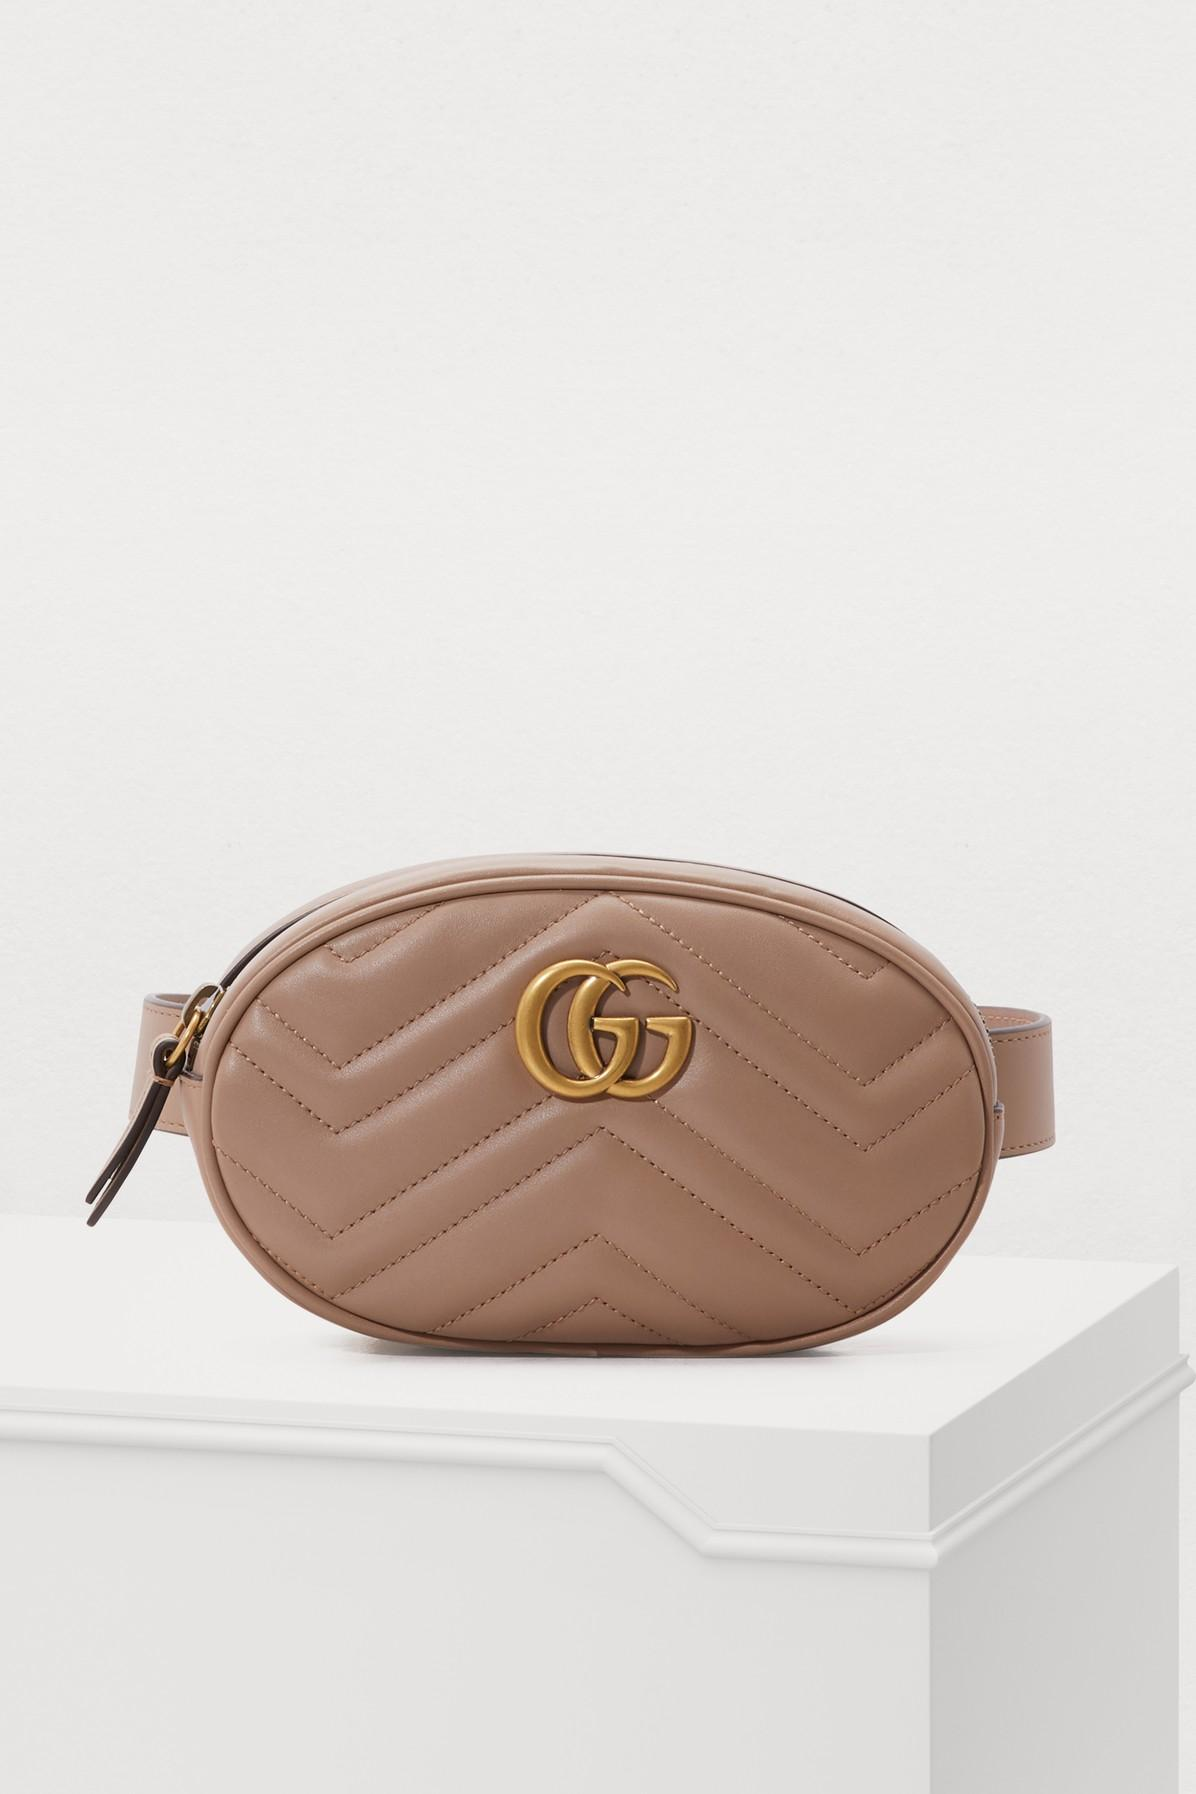 cadfae435f71 Gucci Gg Marmont MatelassÉ Leather Belt Bag In Dusty Pink Chevron Leather